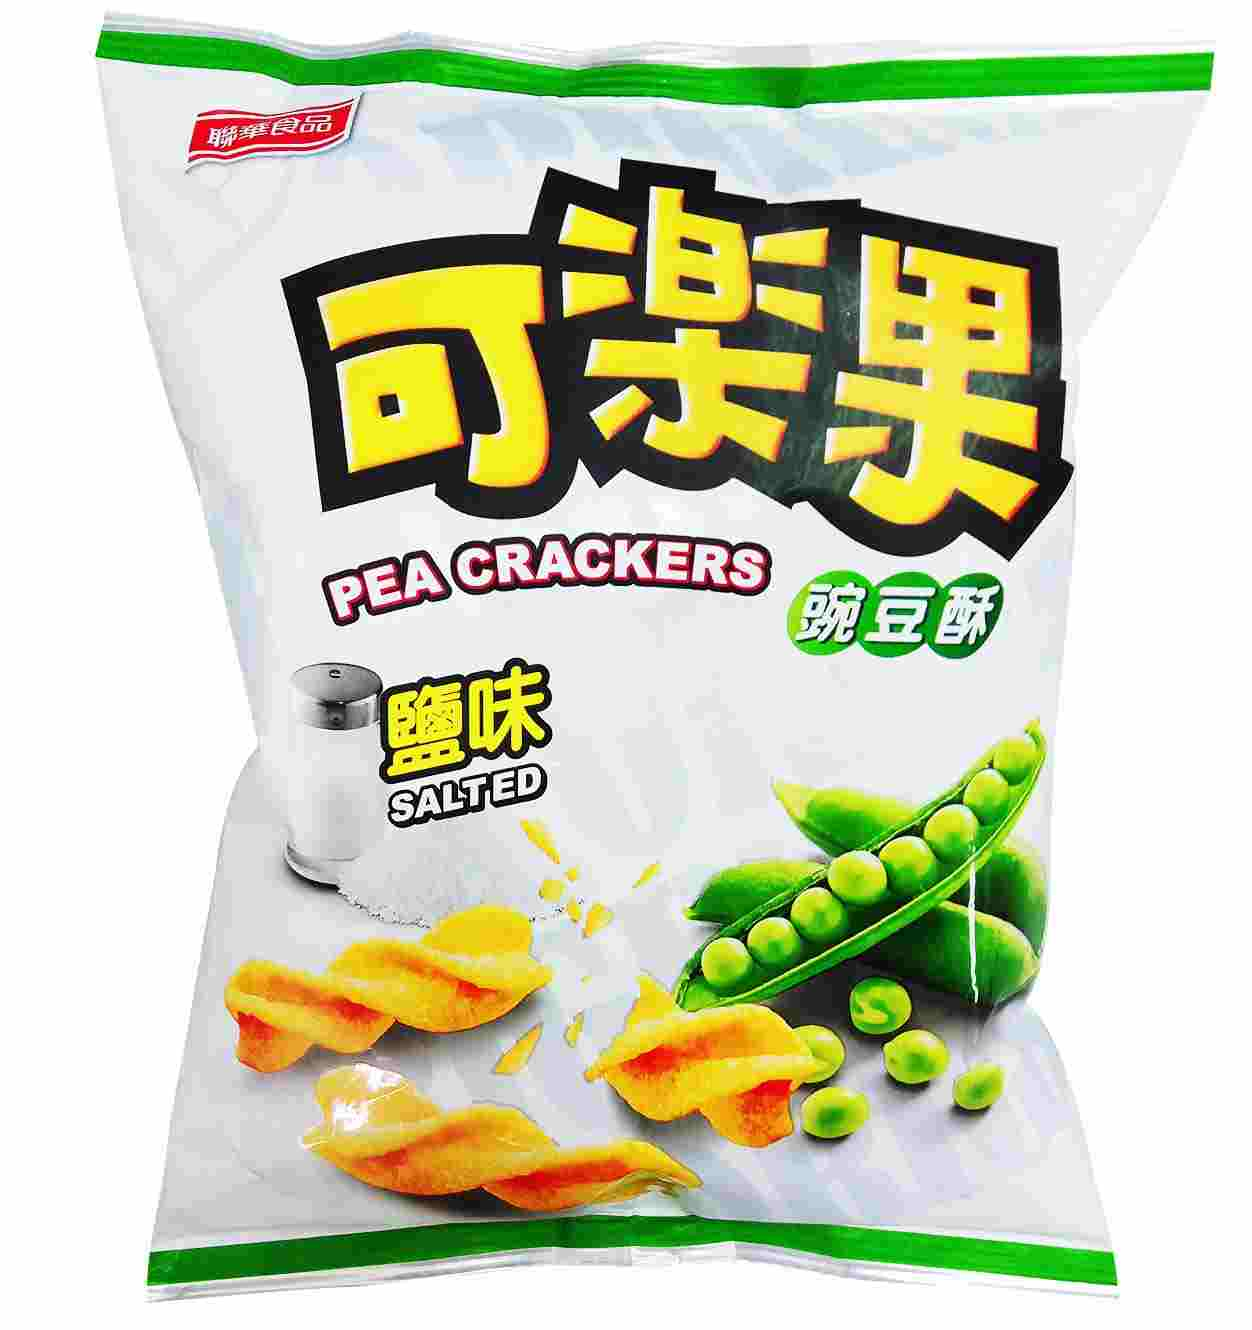 Image Pea Cracker (Salted) 麟华 - 盐味可乐果 72grams